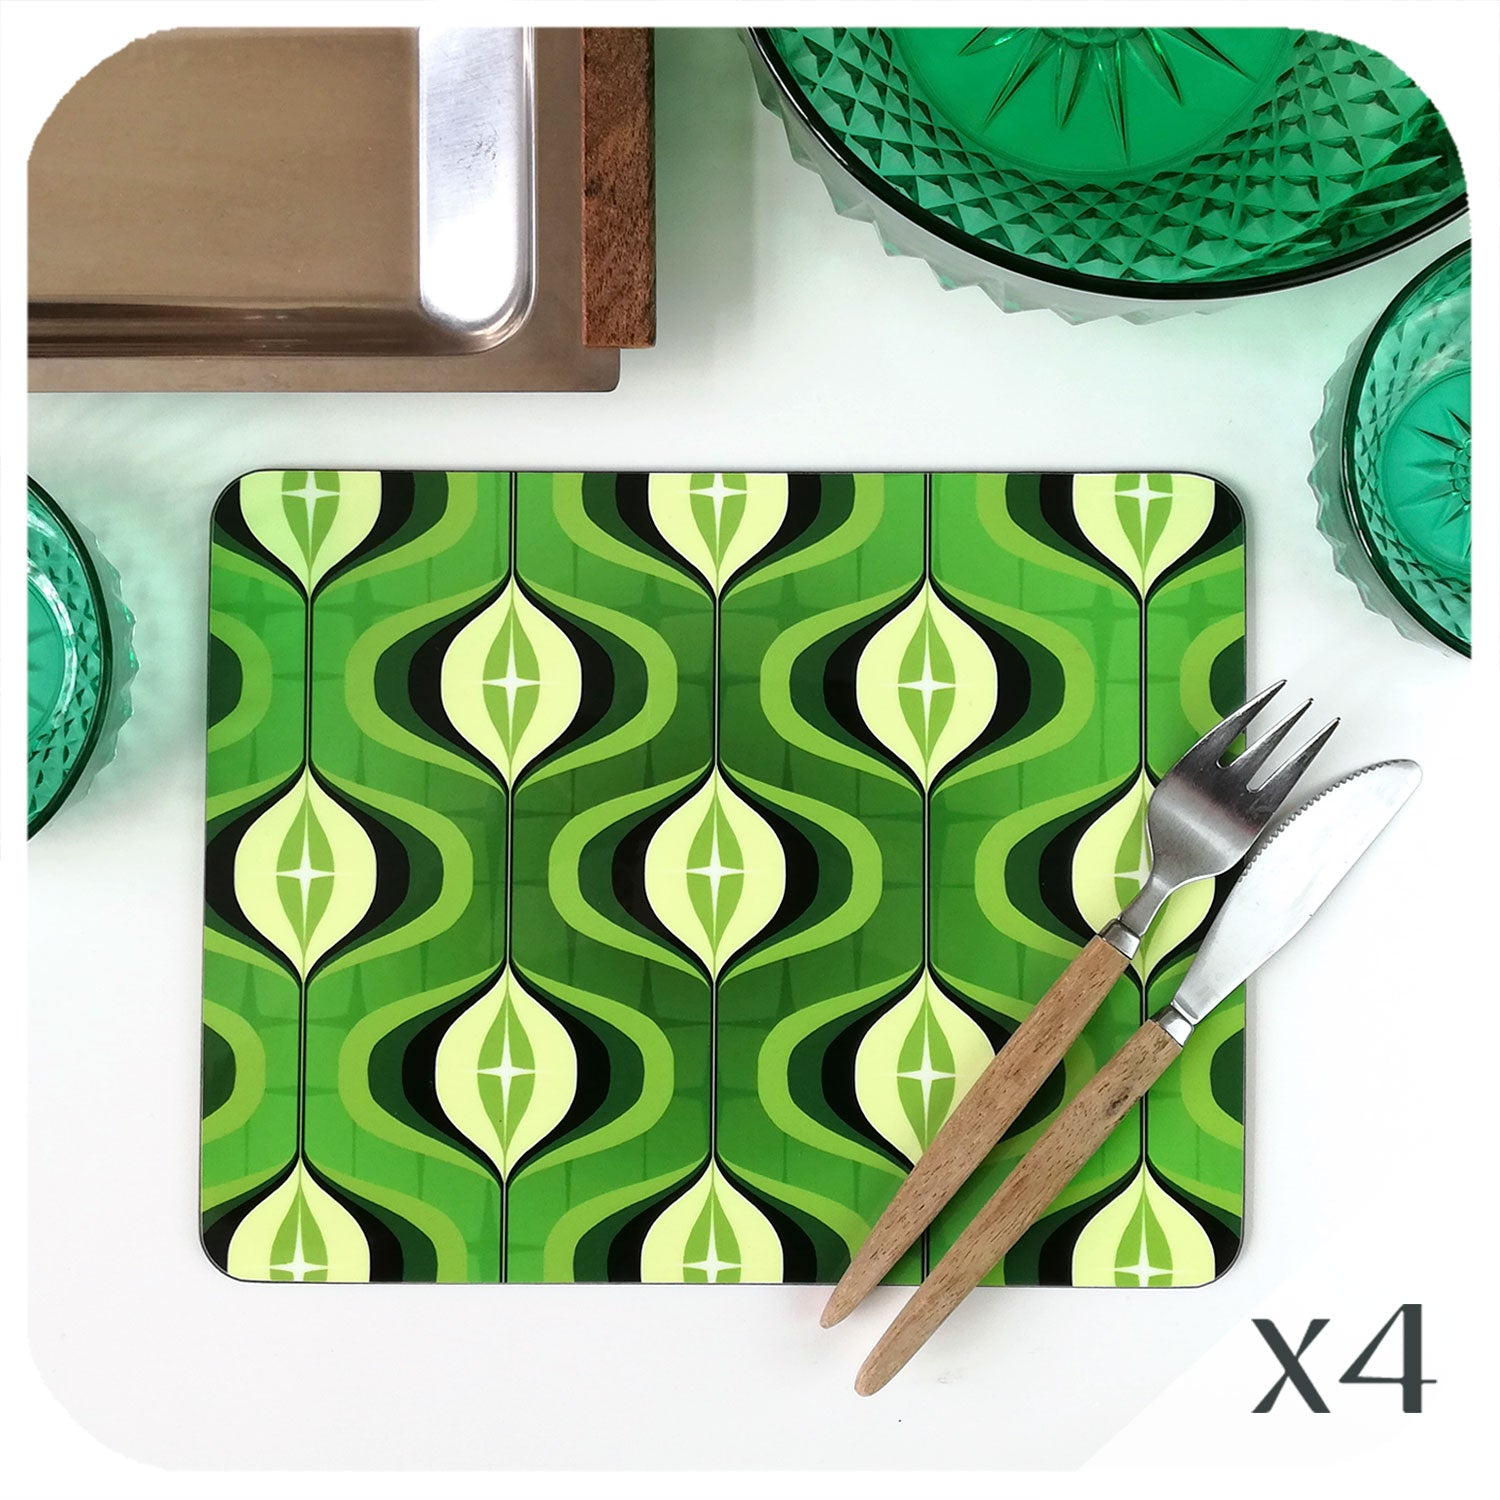 1970s Green Op Art Placemats, set of 4 | The Inkabilly Emporium